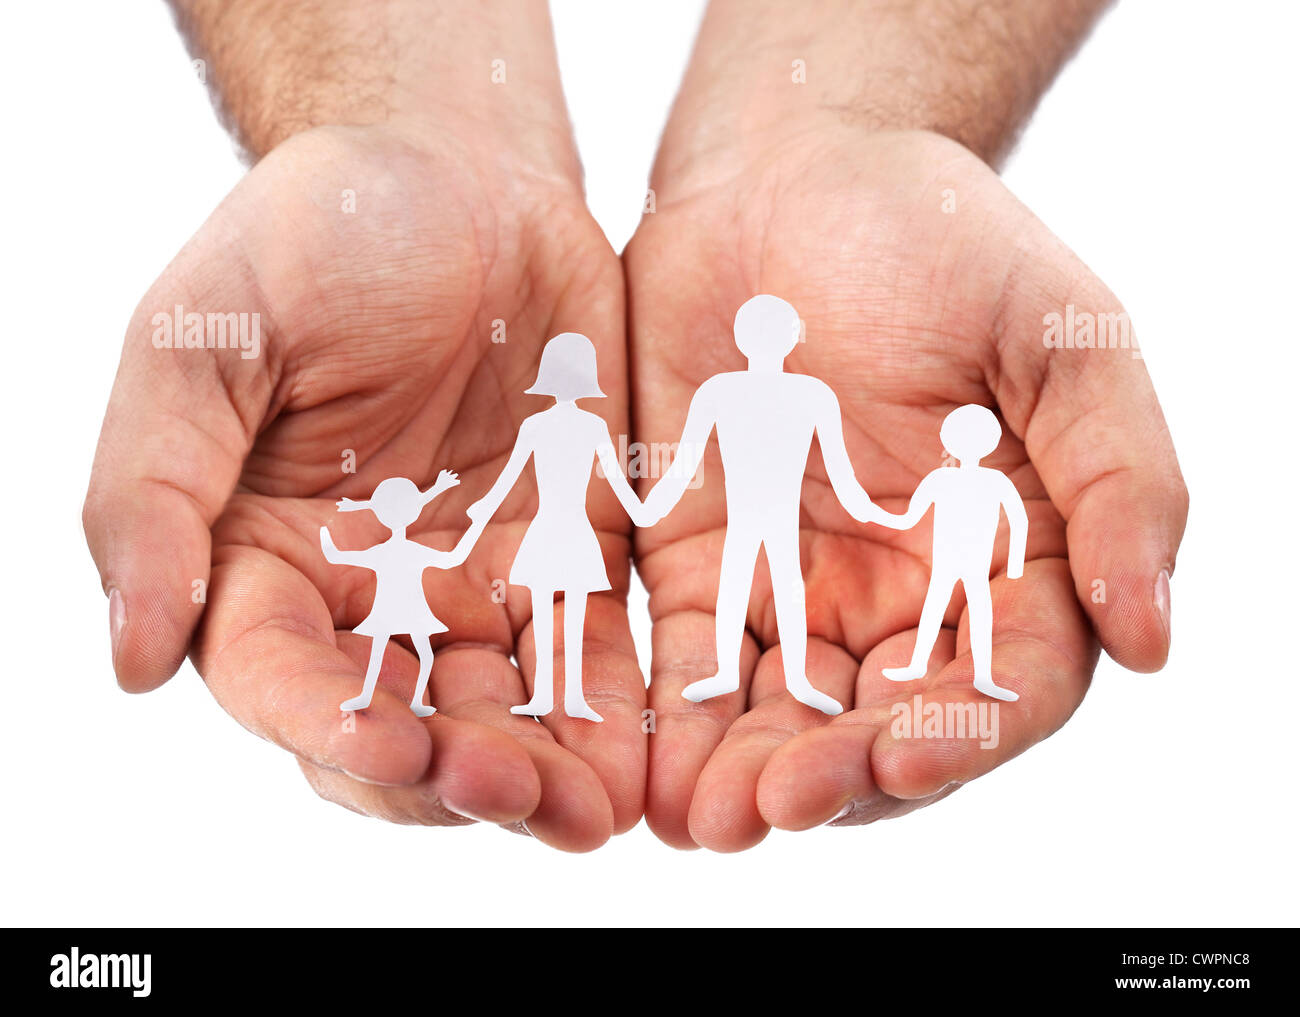 Cardboard figures of the family on a white background. The symbol of unity and happiness. Hands gently hug the family. - Stock Image